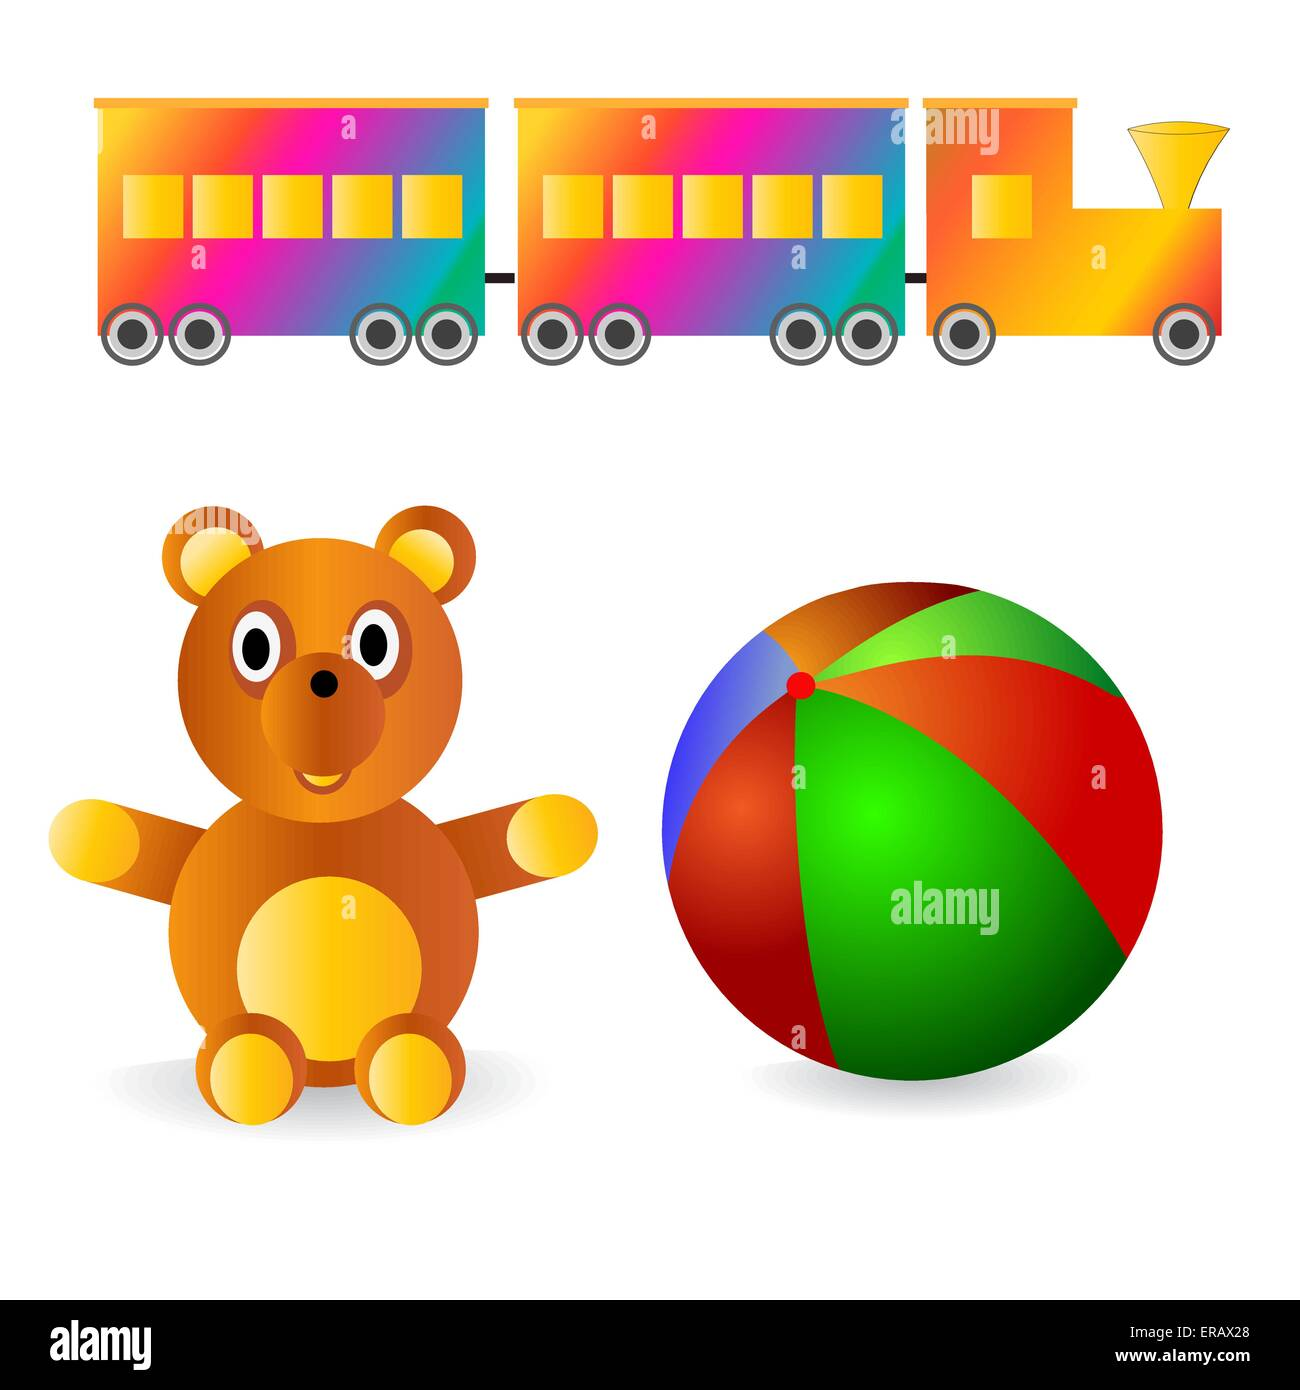 Children's toys-ball, bear and locomotive - Stock Image